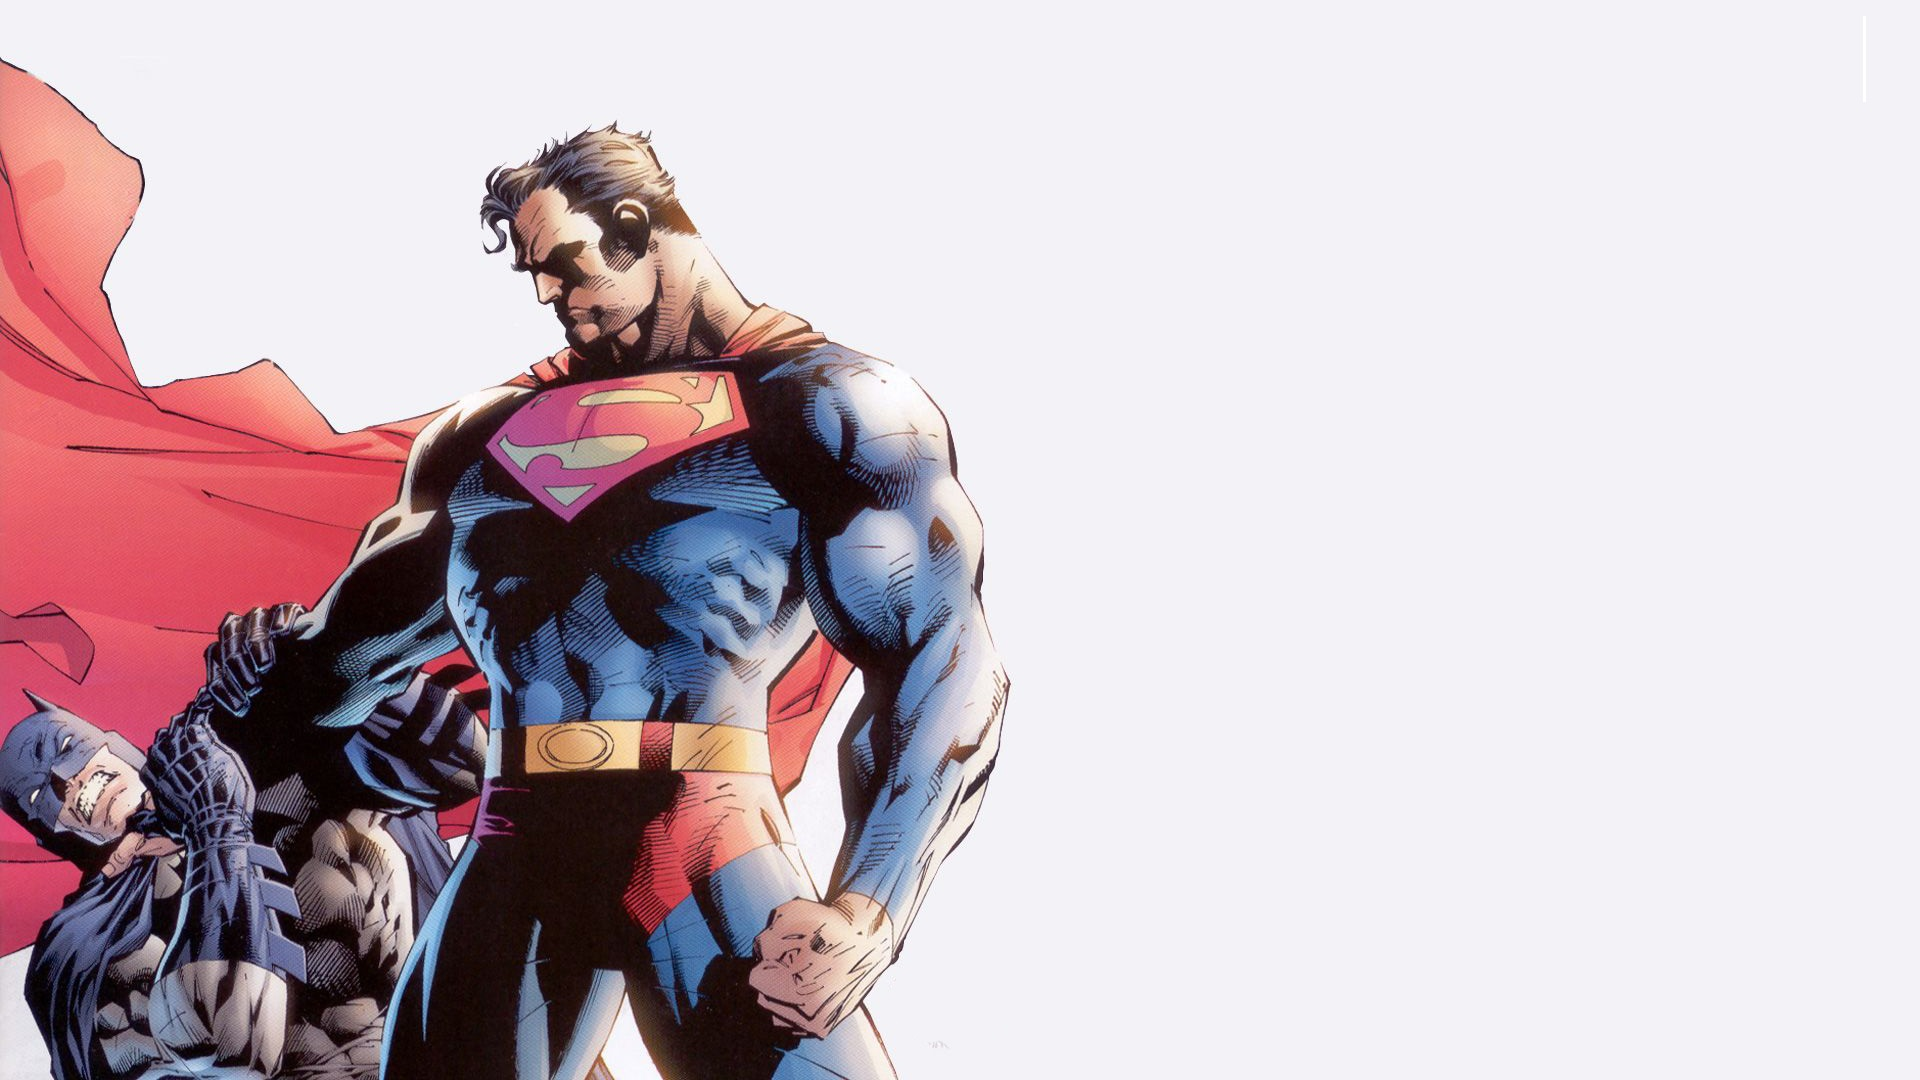 Big as well Superman Logo Wallpaper in addition Spider Man Mosaic Marvel  ics  ic Books Wallpaper 17013 moreover Shop For Wallpaper Online Wallpapersafari For Wallpaper Online Shopping additionally Where Can I Download The Wallpapers Of Windows 10 Spotlight. on awesome superhero wallpapers iphone